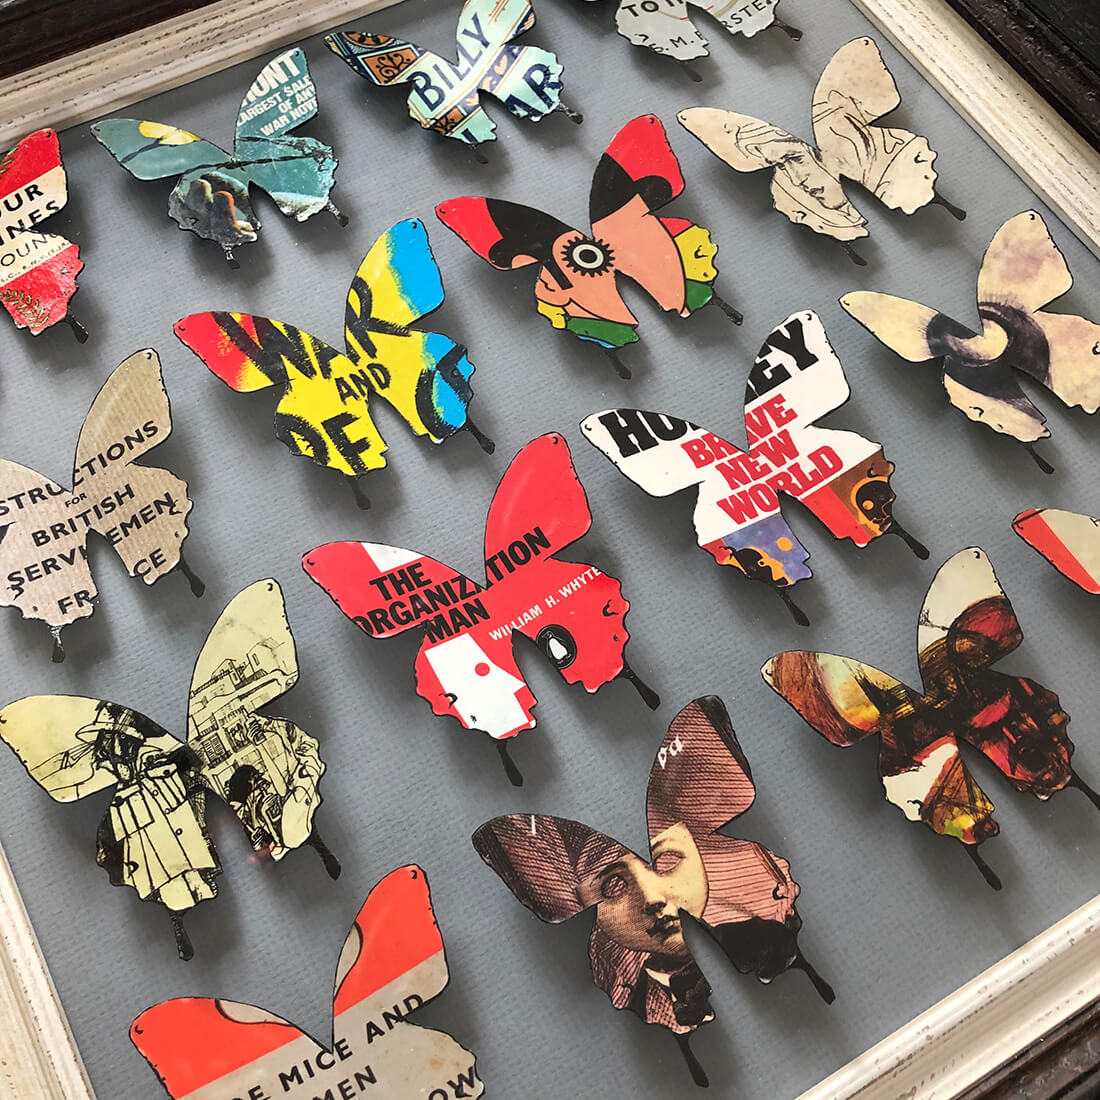 16 Literary Butterflies (double frame)